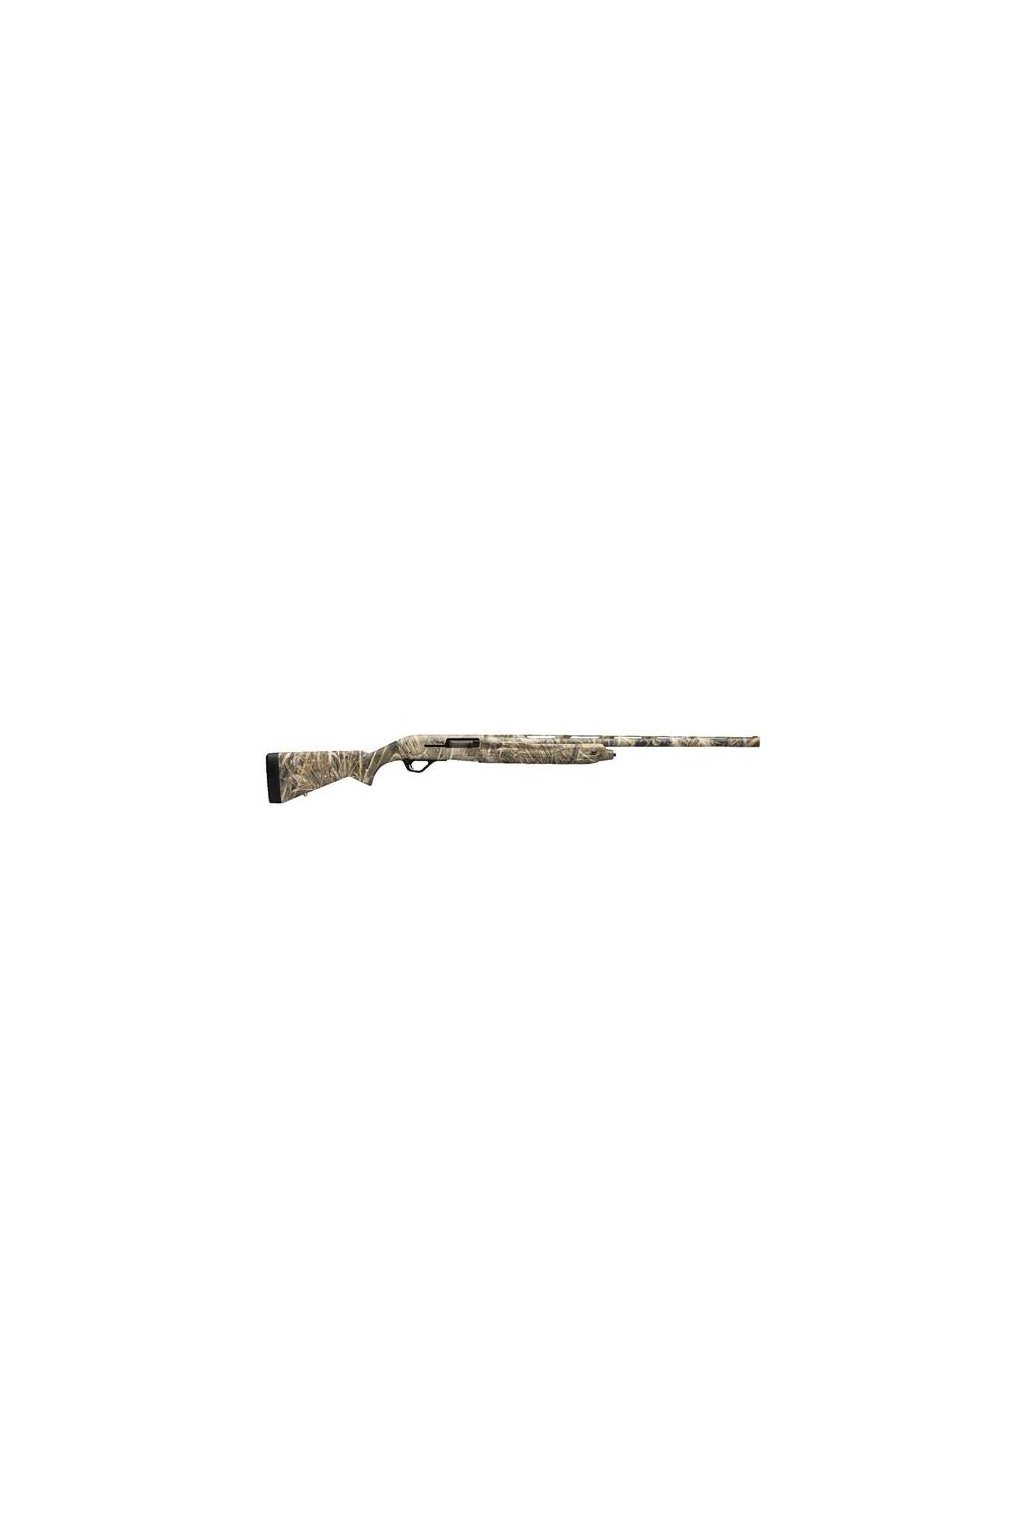 Winchester SX4 Waterfowl 12 Gauge 26 Barrel 3 5 Chamber Realtree Max 5 048702006920 image1 63302.1495395197.500.500